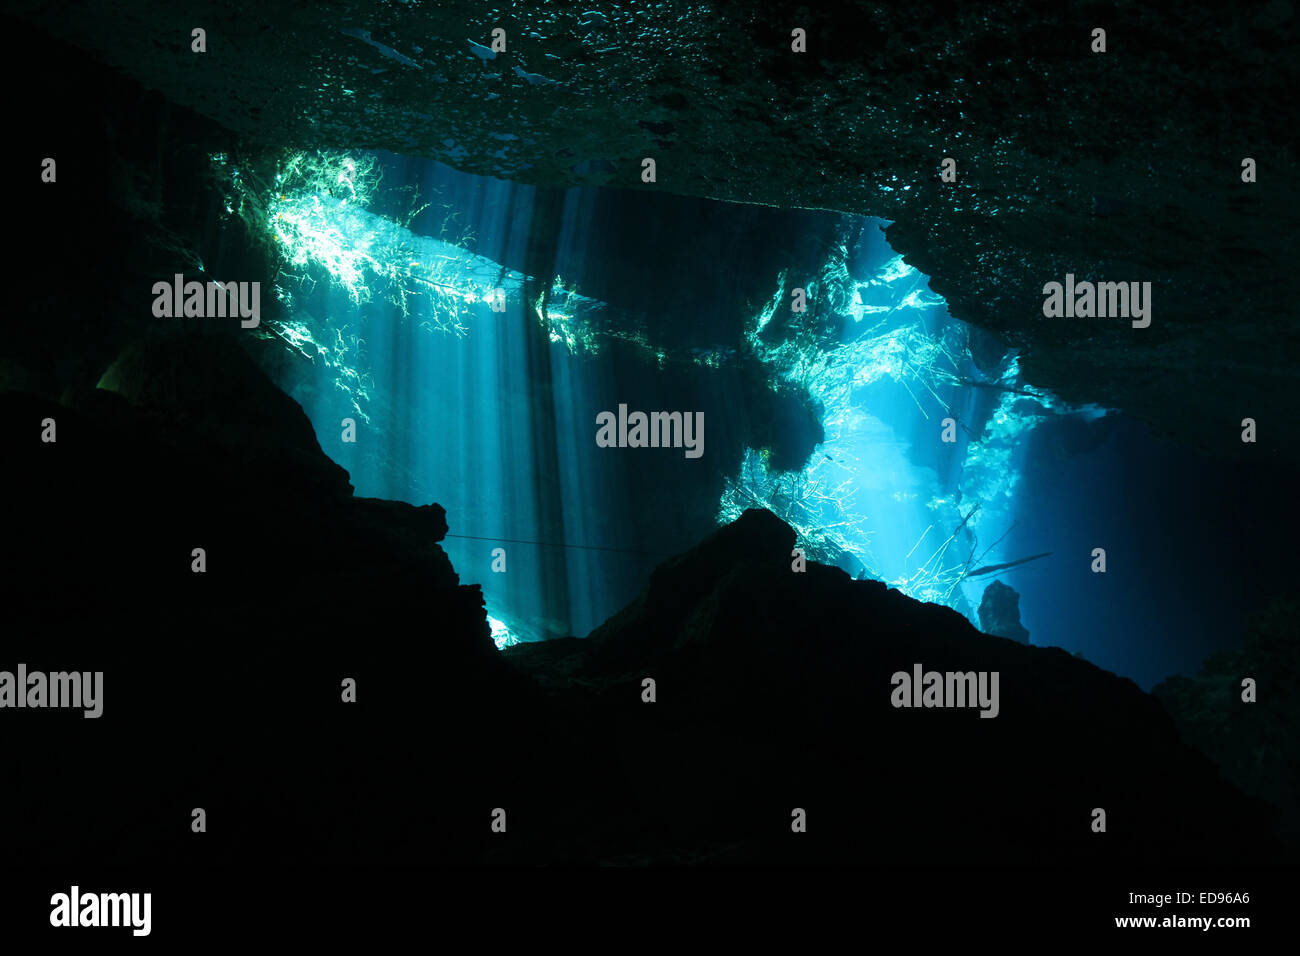 Sunbeams Breaking Through the Surface in Chac-Mool Cenote, Playa del Carmen, Mexico - Stock Image